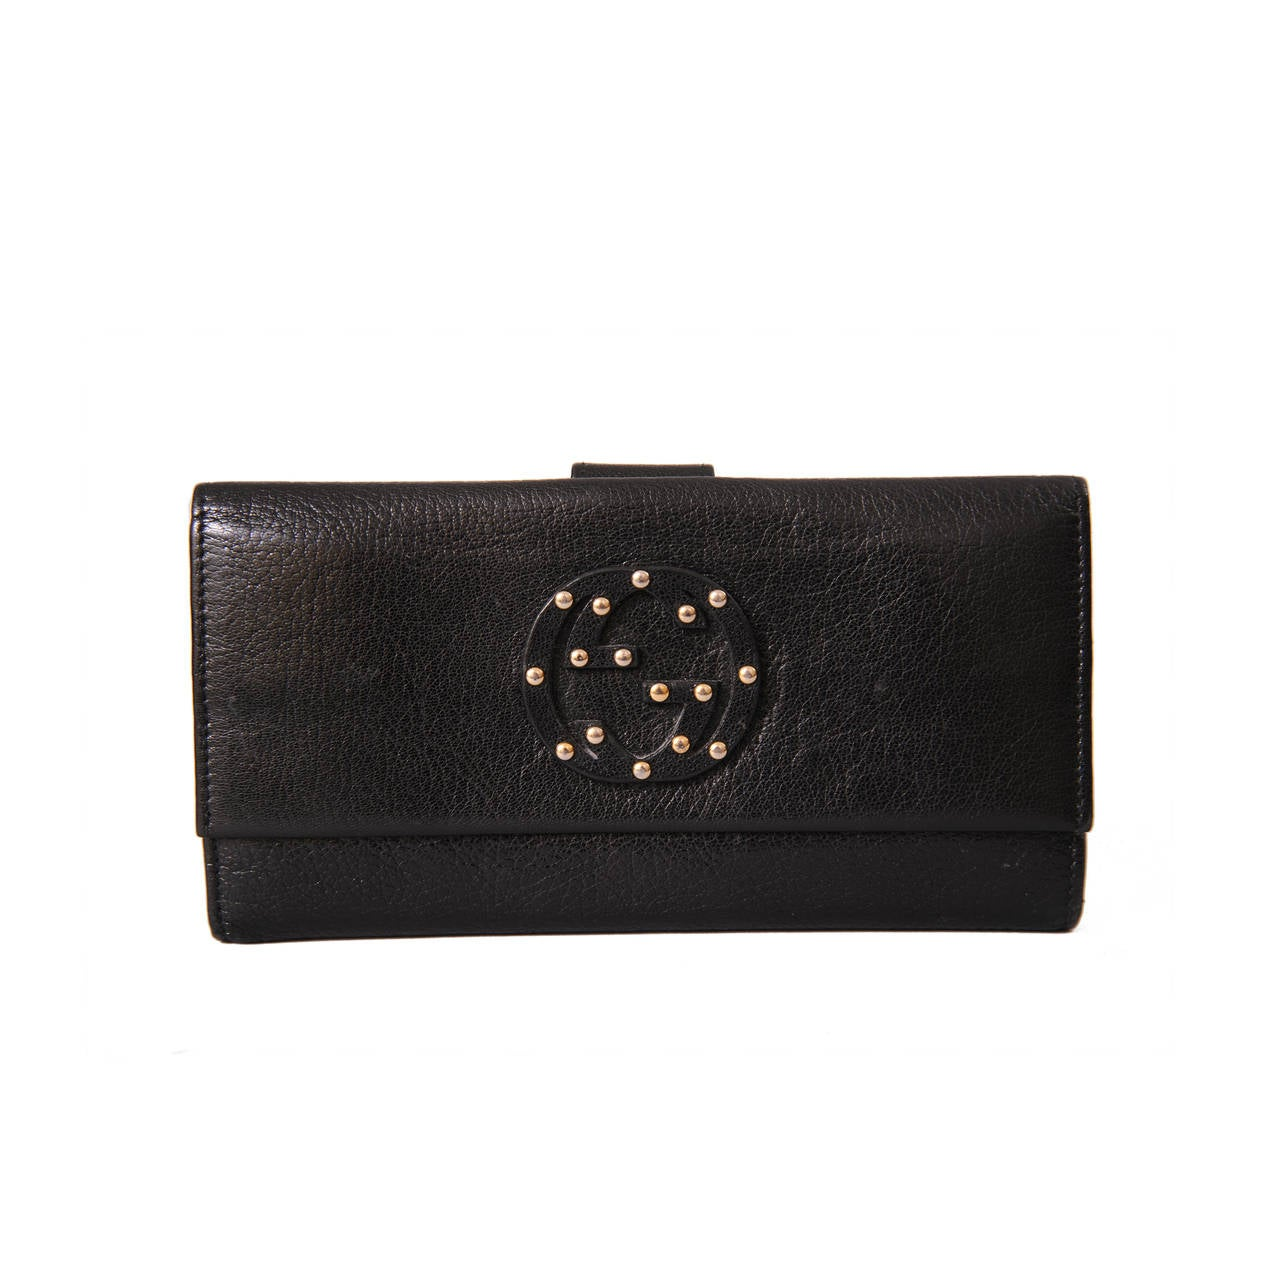 5c6a3e47b13 Gucci Studded Logo Black Leather Wallet For Sale at 1stdibs